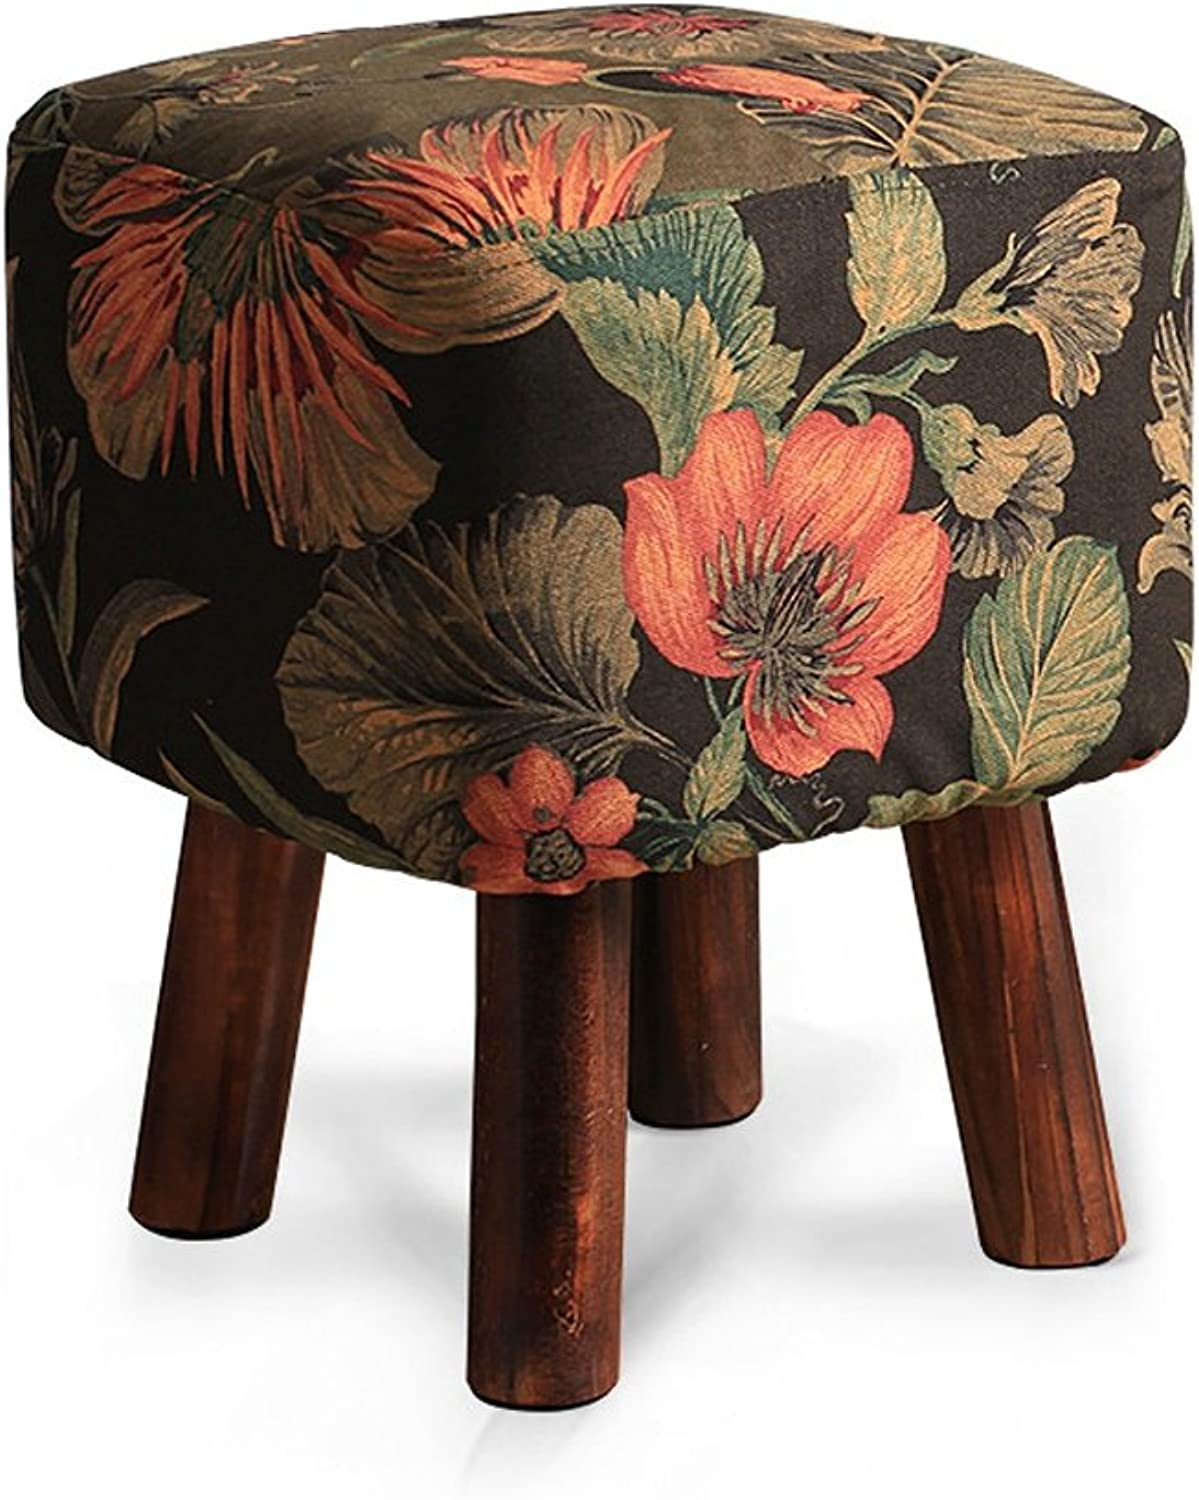 ALUS- Stool Solid Wood Stool Change shoes Stool Round Stool Sofa Small Bench Fashion Ideas Coffee Table Pier